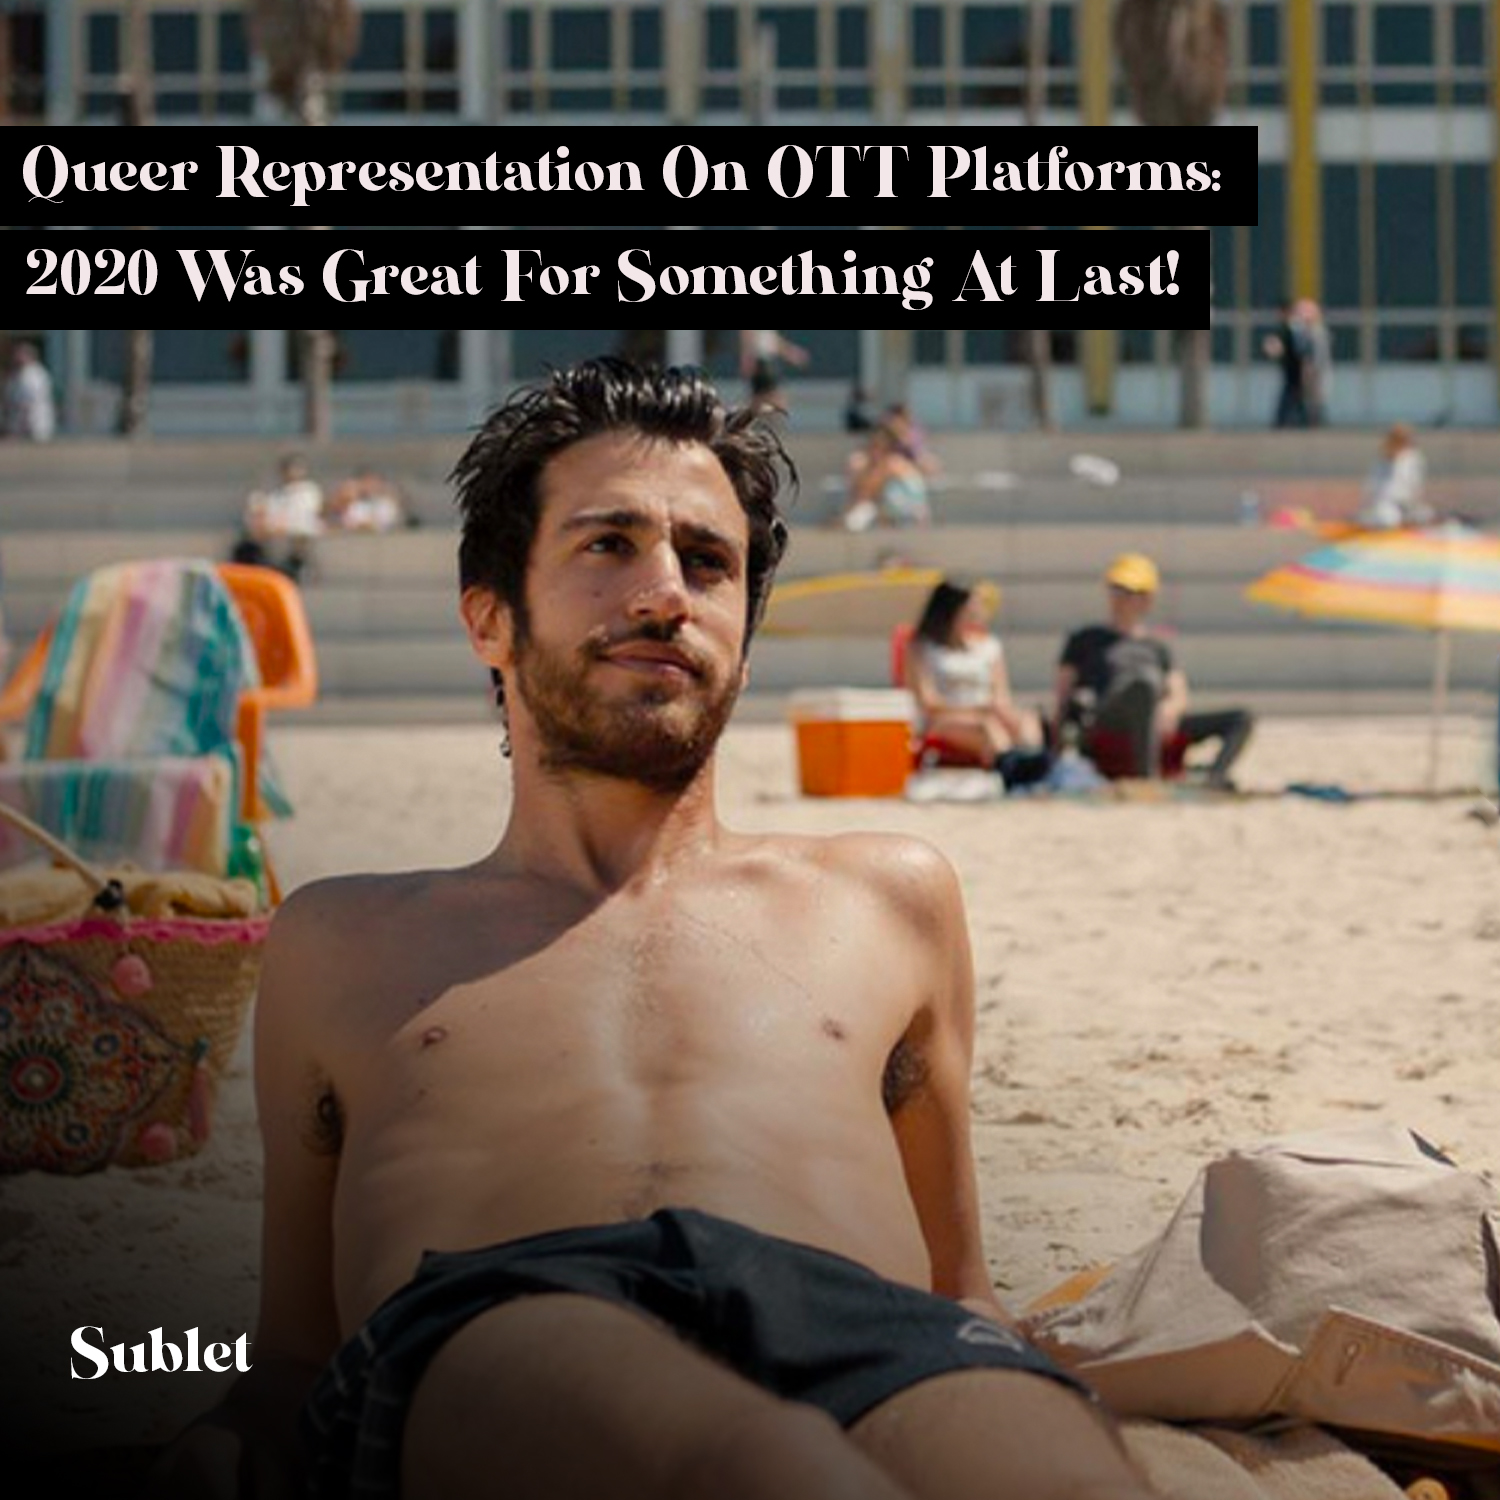 Queer Representation On OTT Platforms: 2020 Was Great For Something At Last!